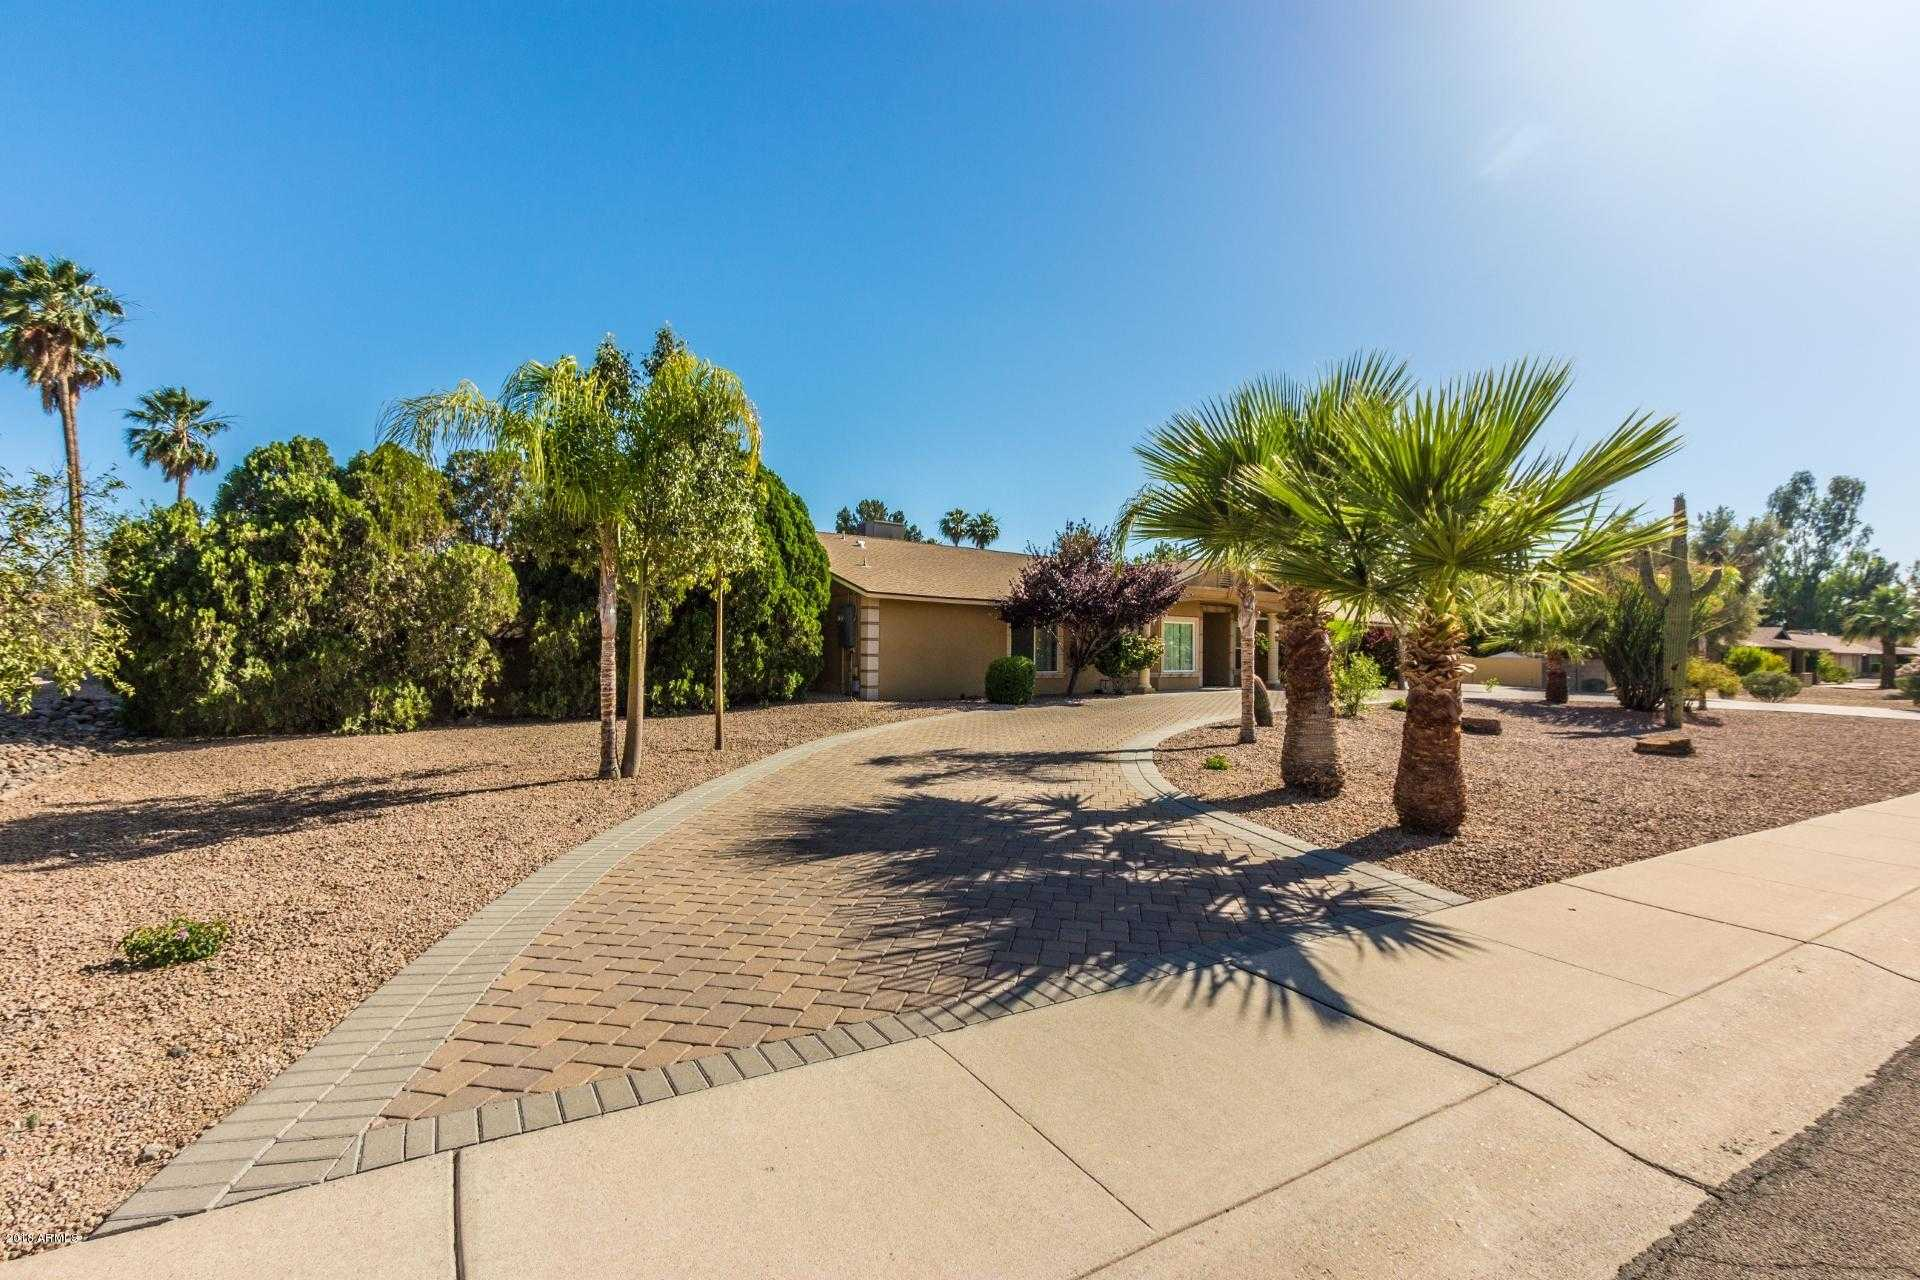 $645,000 - 4Br/3Ba - Home for Sale in Longhorn Ranch 2 Lot 1-131, Glendale